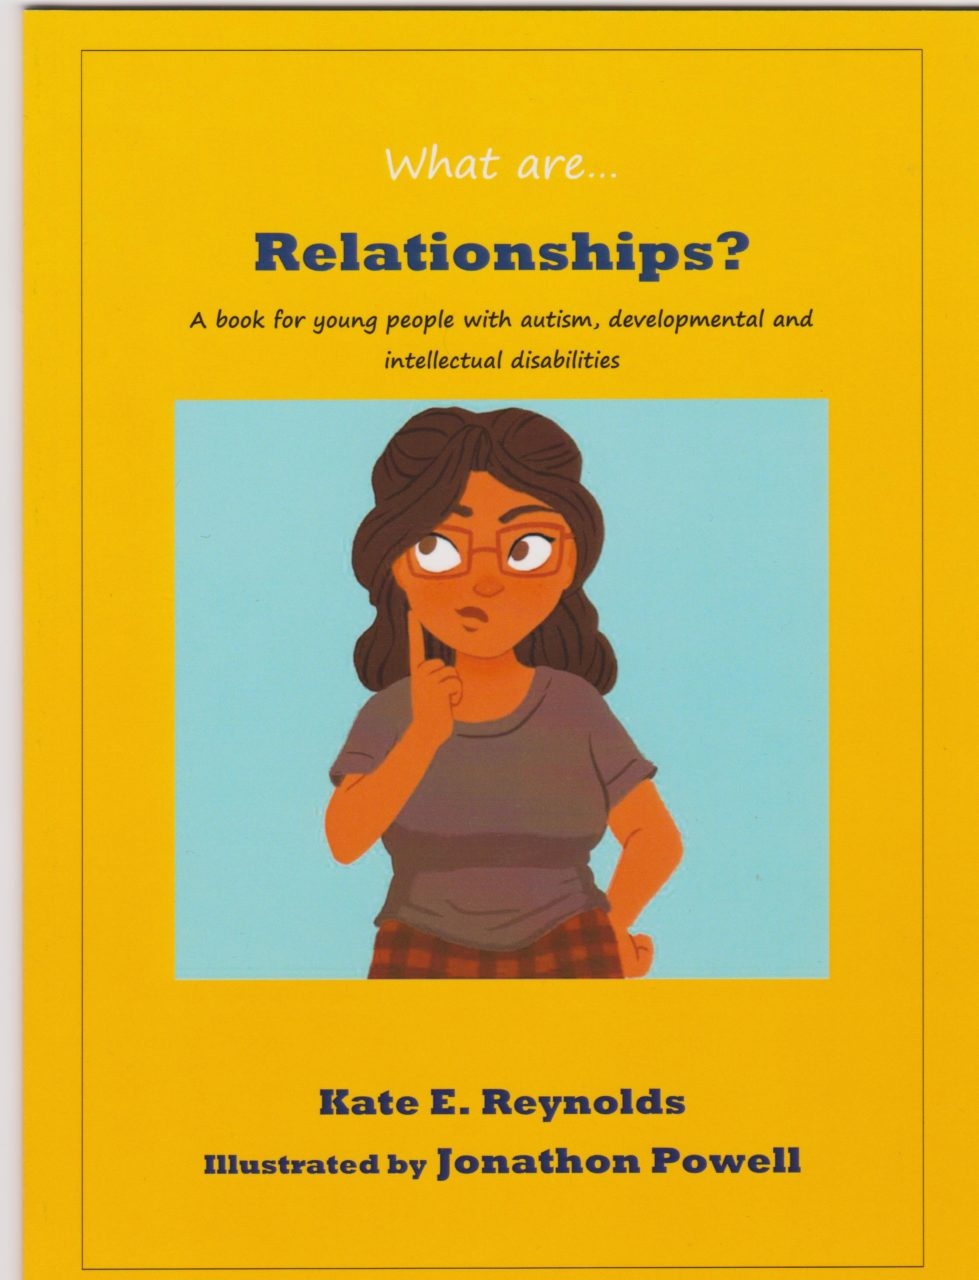 What are relationships book cover